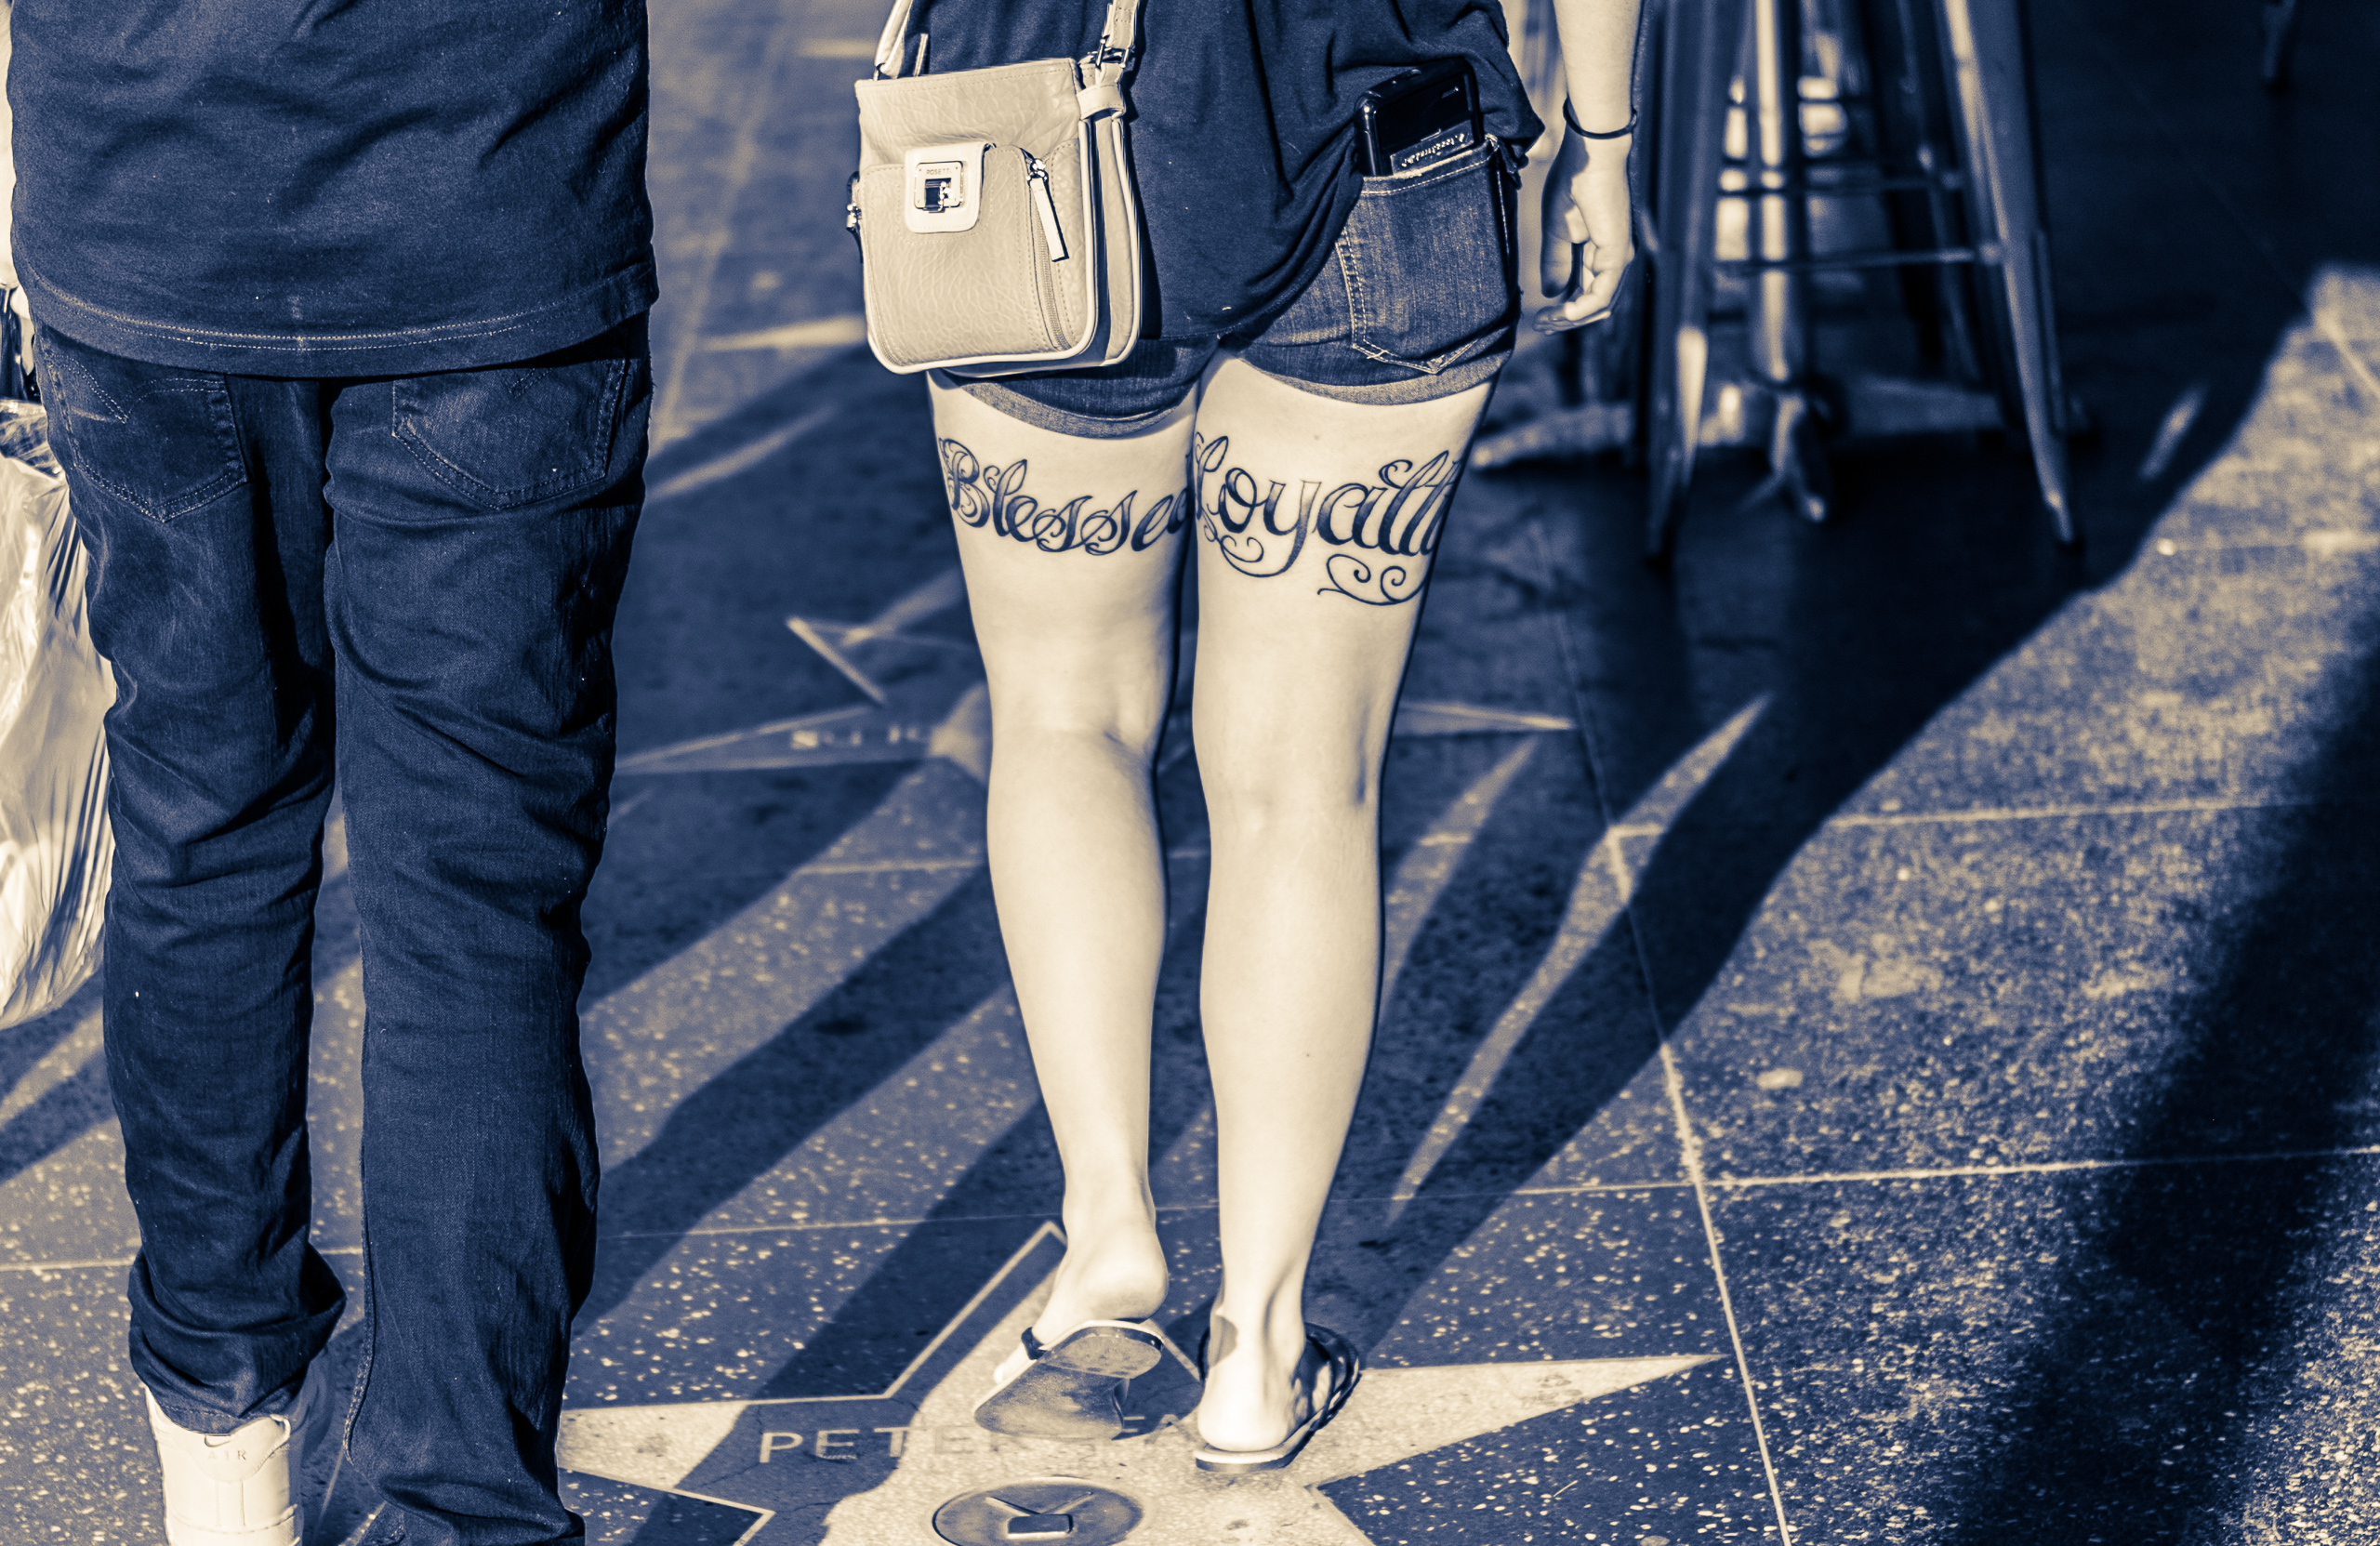 """a woman in denim shorts walks down Hollywood Blvd. Tattooed on the back of one thigh is the word """"Blessed"""" and on the back of her other thigh the word """"Loyalty"""" is tattooed"""